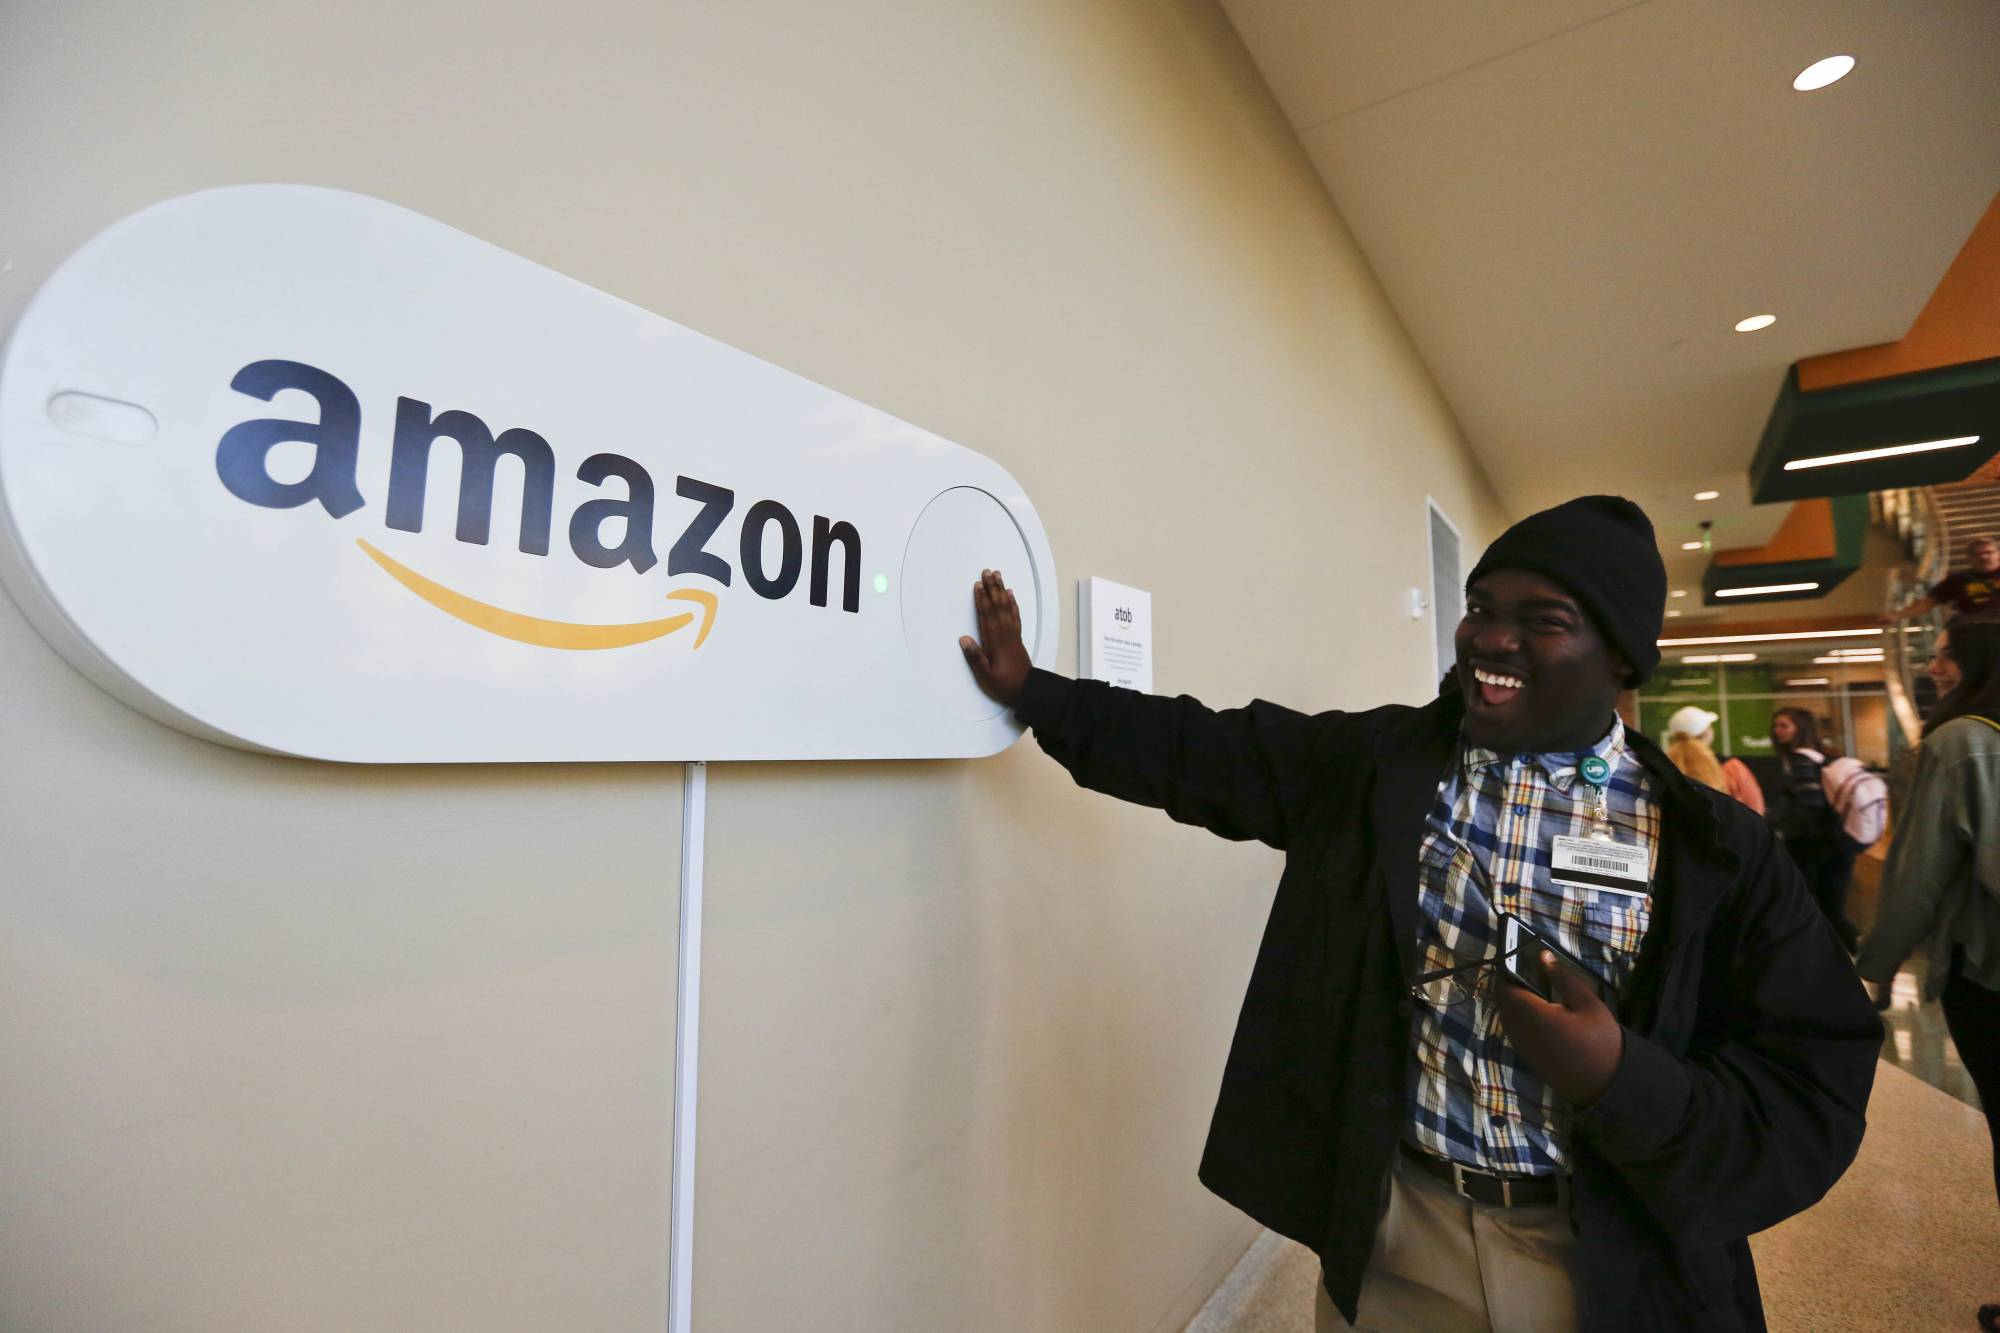 DC among top contenders for Amazon headquarters